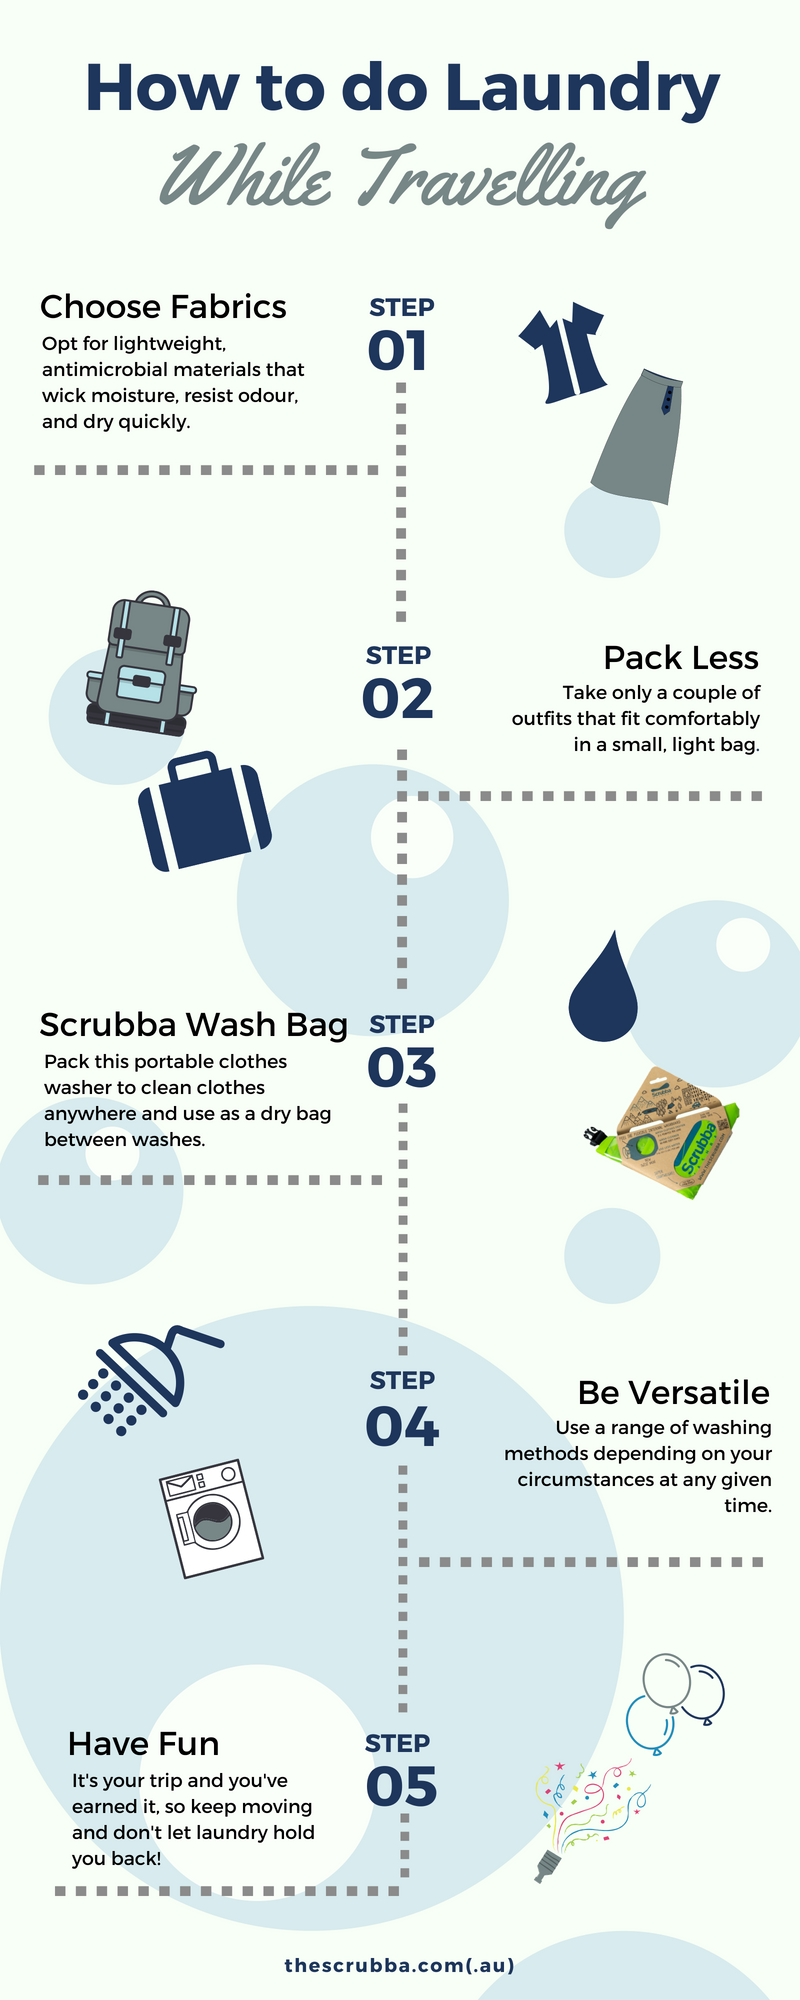 How to do laundry while travelling infographic